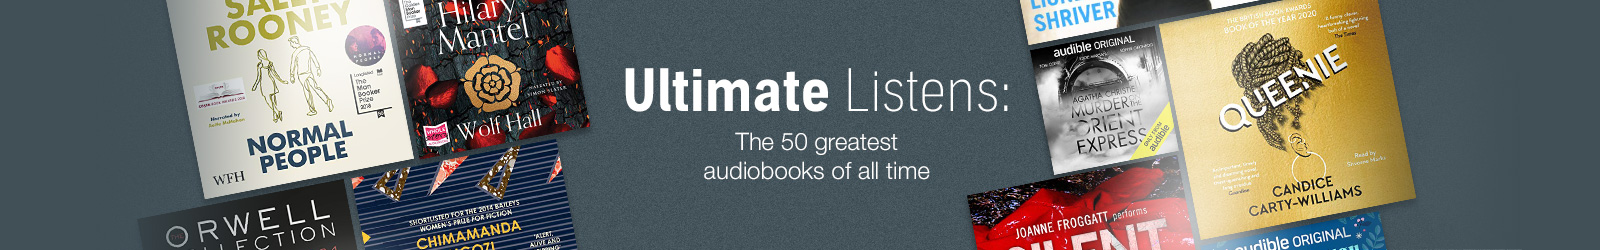 Ultimate Listens. The 50 greatest audiobooks of all time